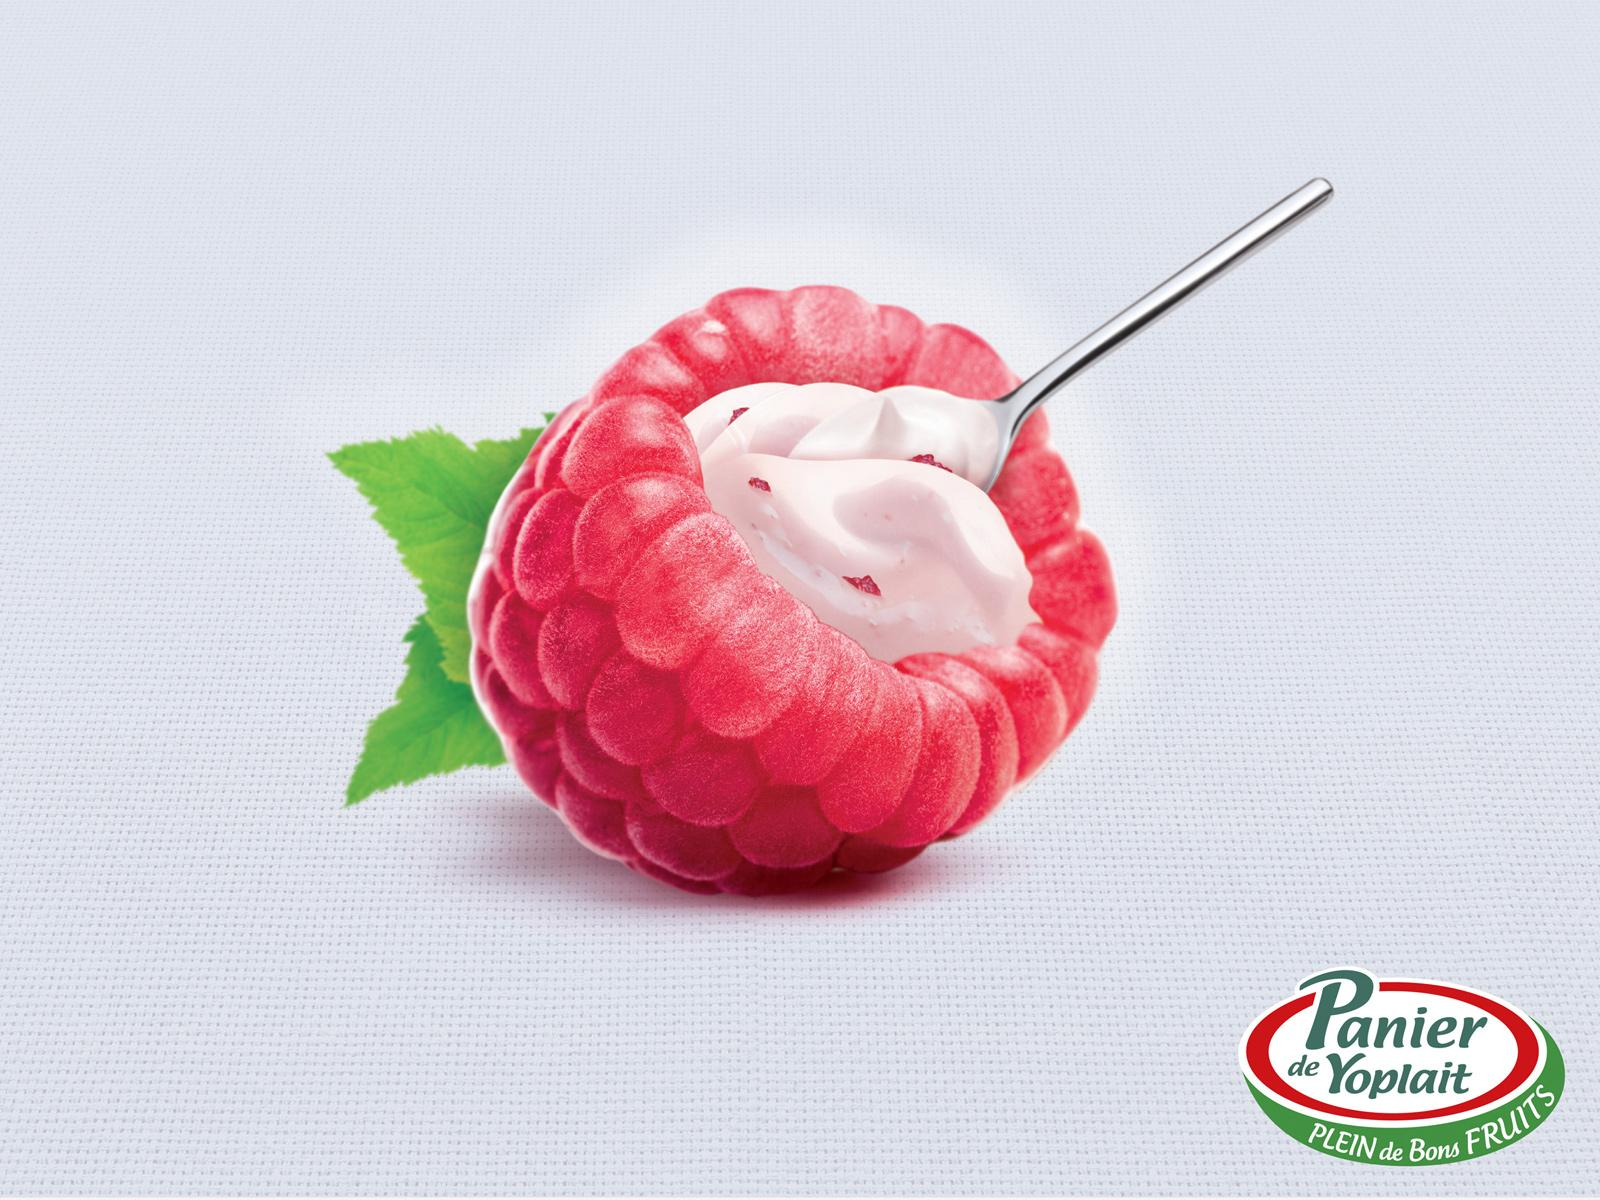 Yoplait Print Ad -  Rasberry